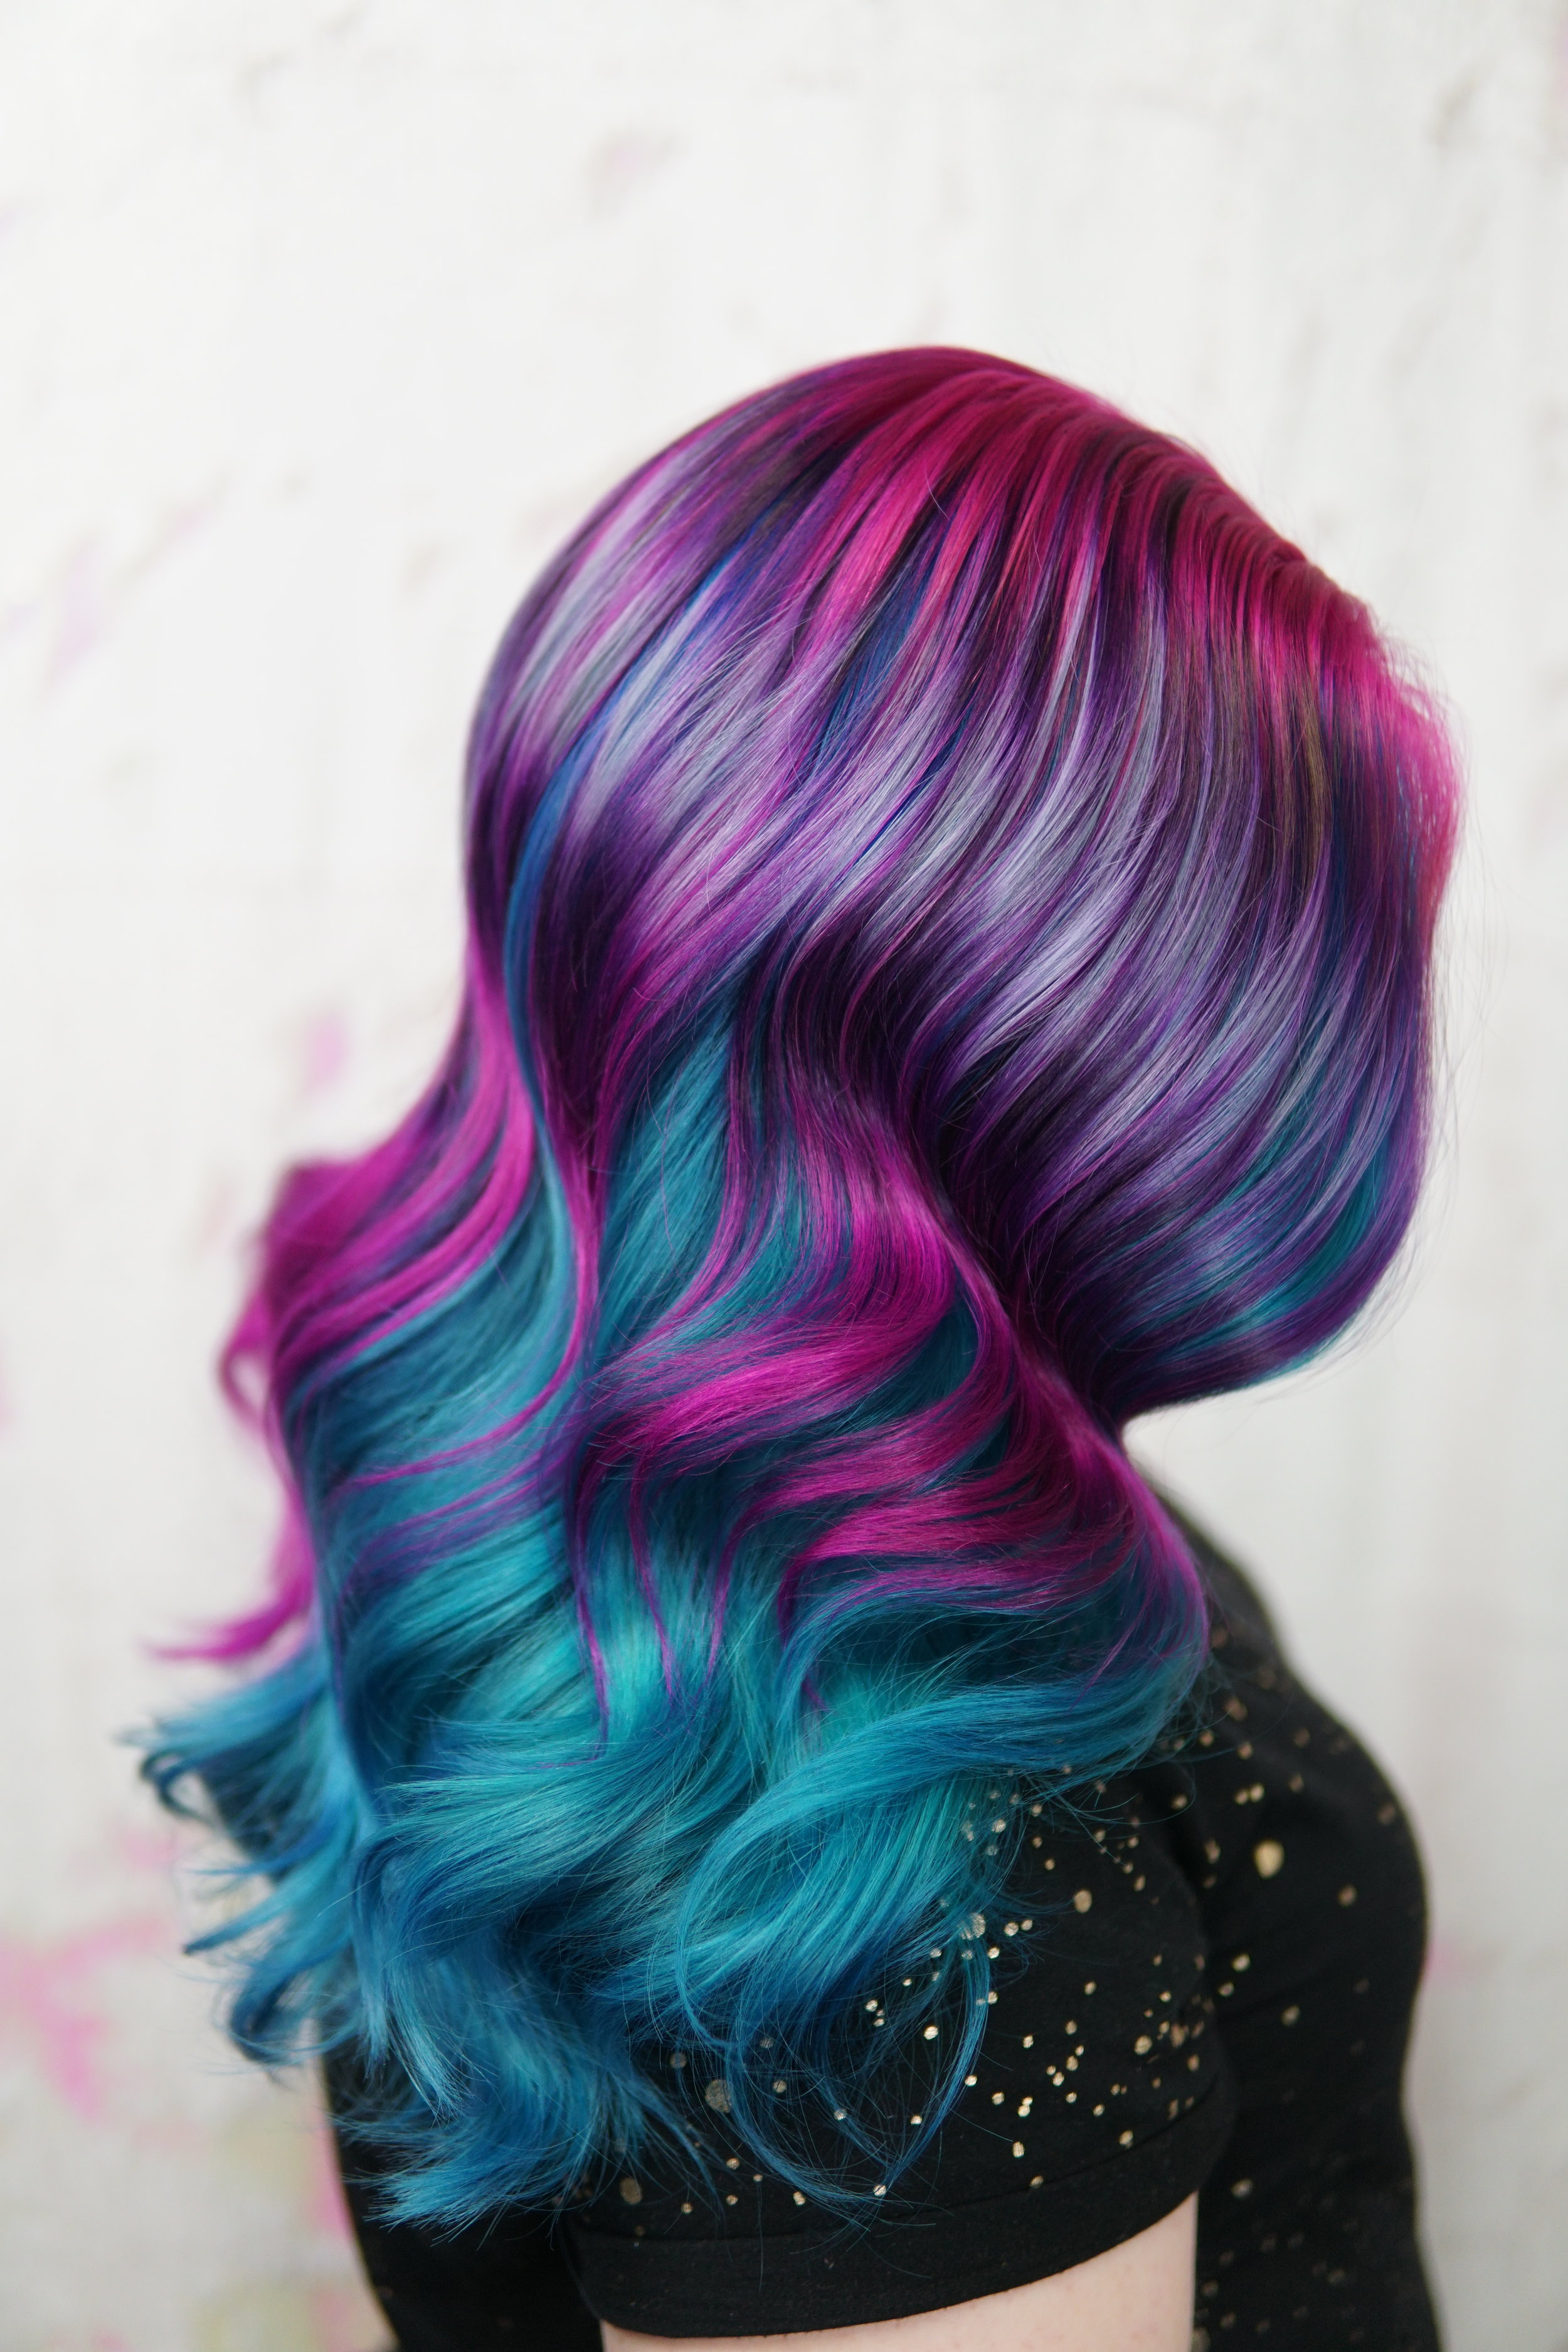 Mutli Colored hair- Cryistal Chaos virginia beach hair